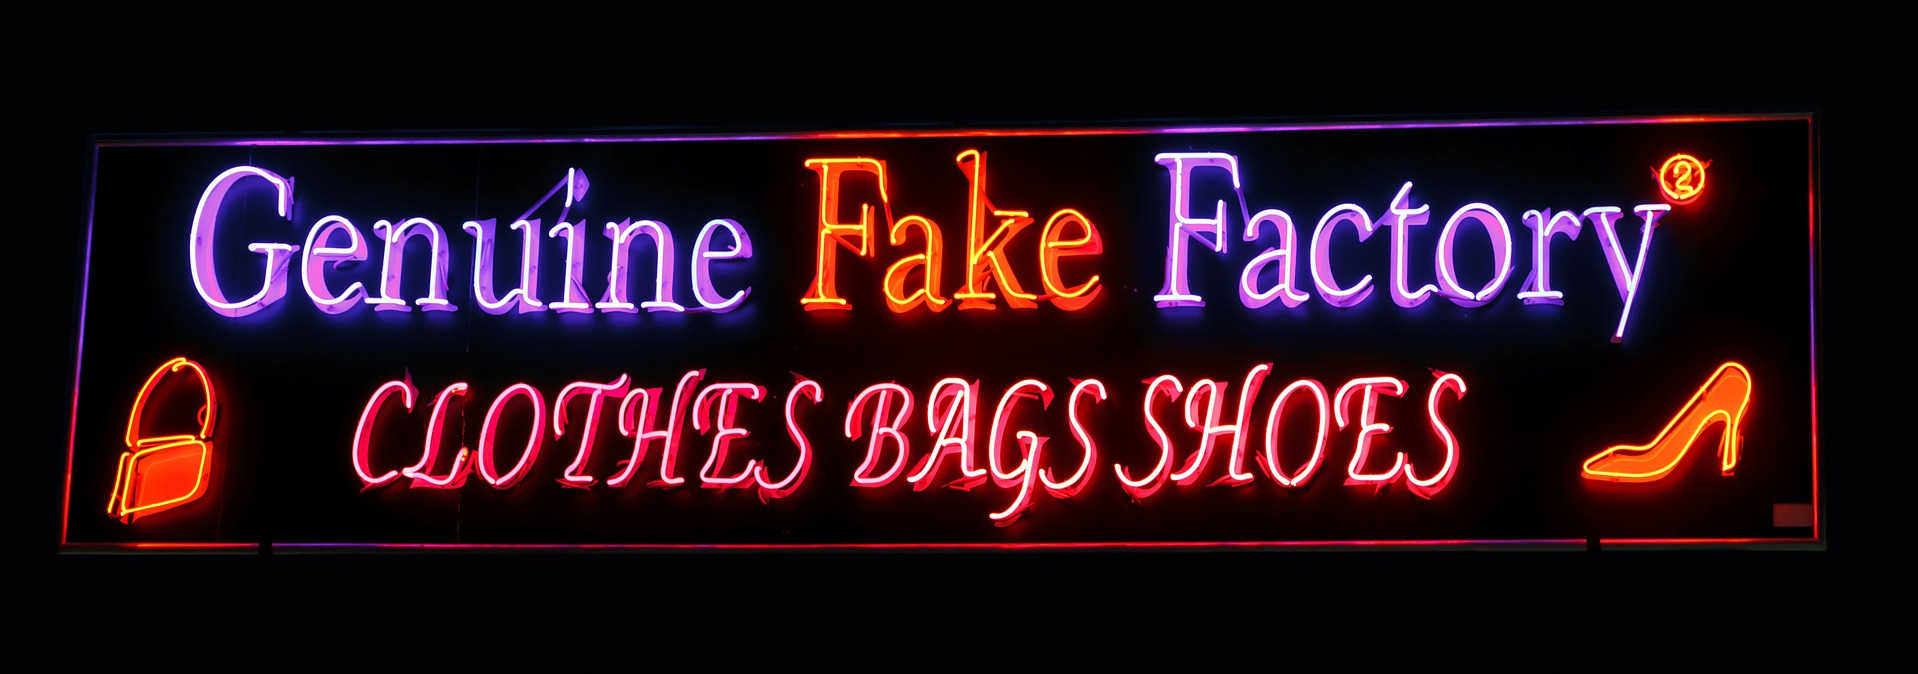 A neon sign advertising fake items, representing the influence of using fake items on unethical behavior.